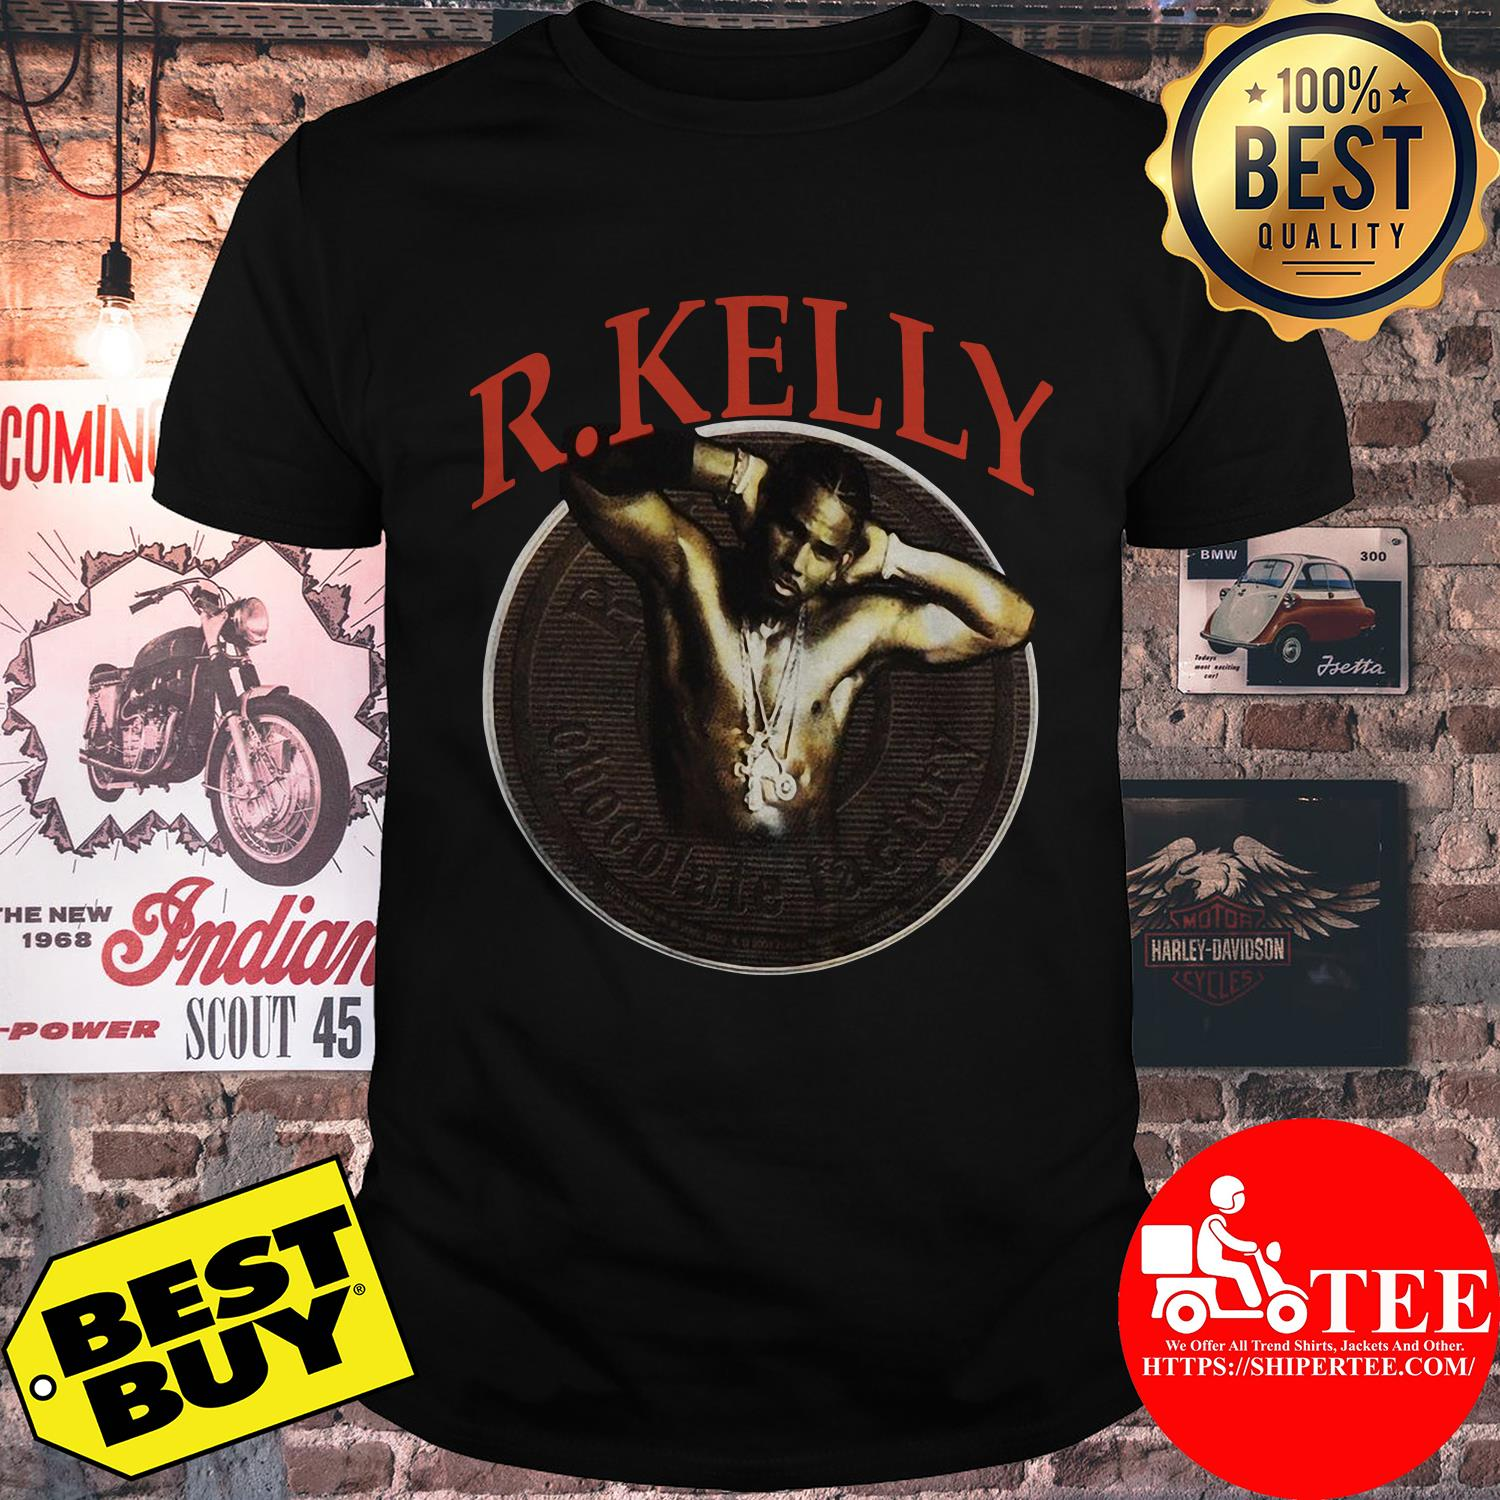 Vintage R. Kelly 90s 2000s Chocolate Factory Tour shirt